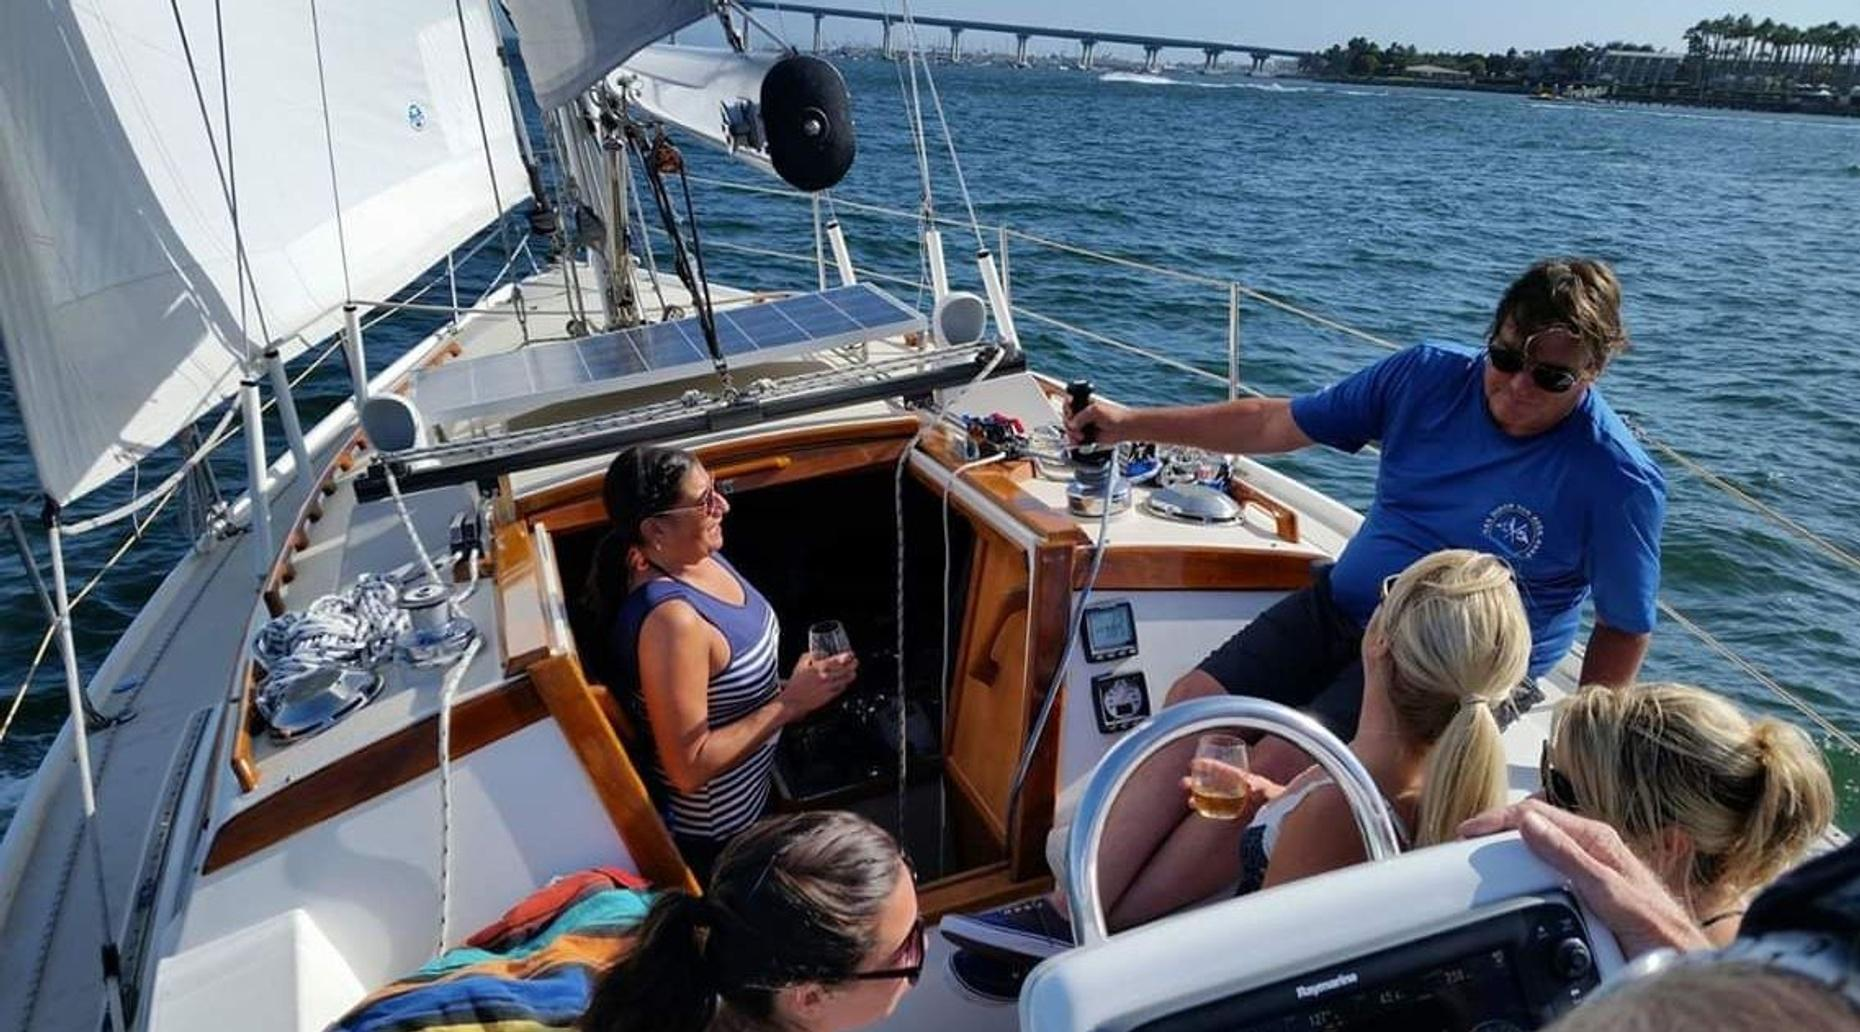 Sailing Tour for Two on San Diego Bay (6 pass max)